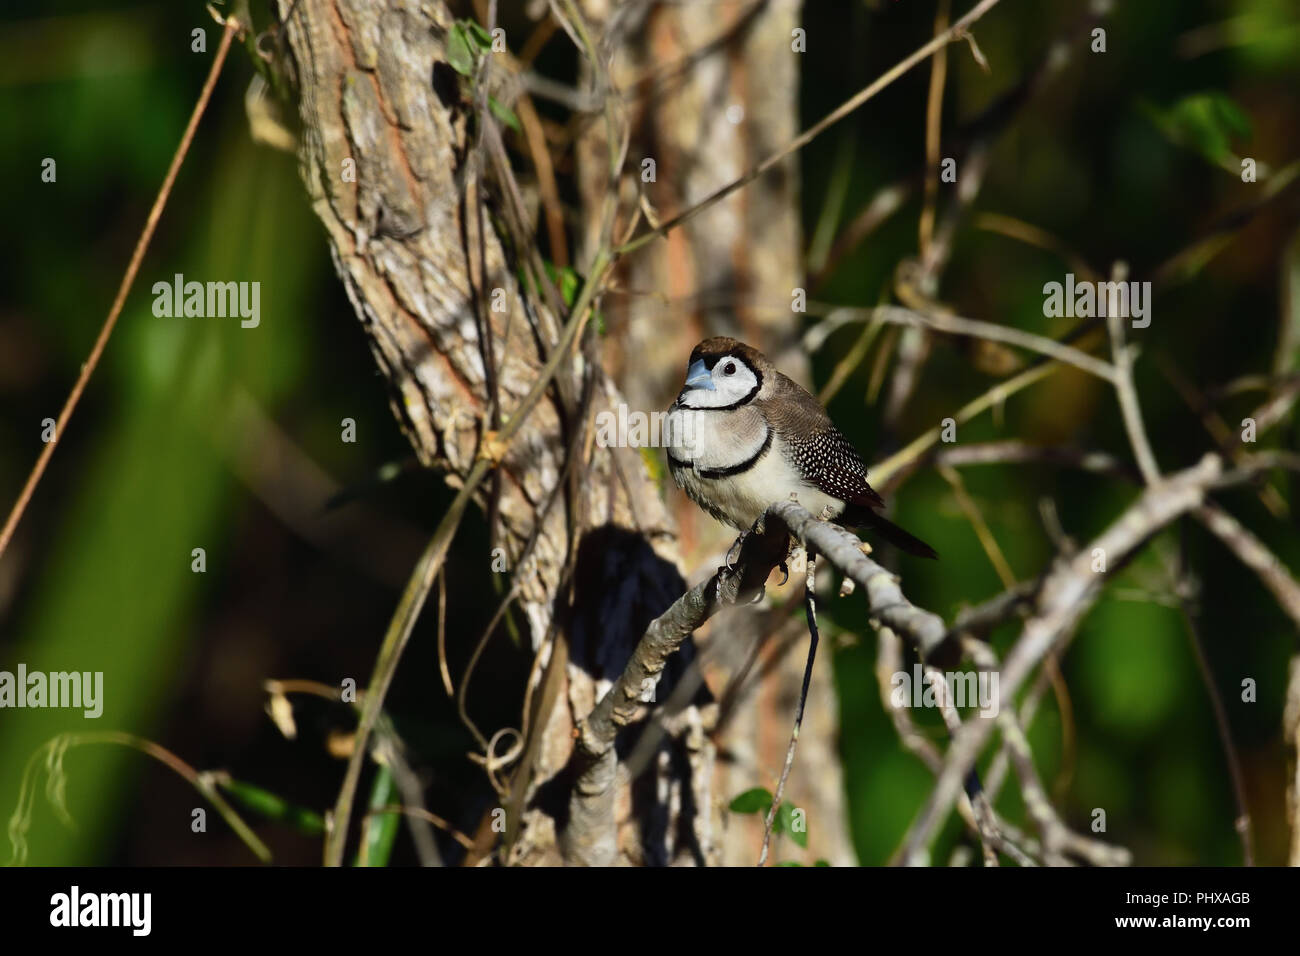 An Australian, Queensland Double-barred Finch ( Taeniopygia bichenovii ) perched on a tree branch resting Stock Photo